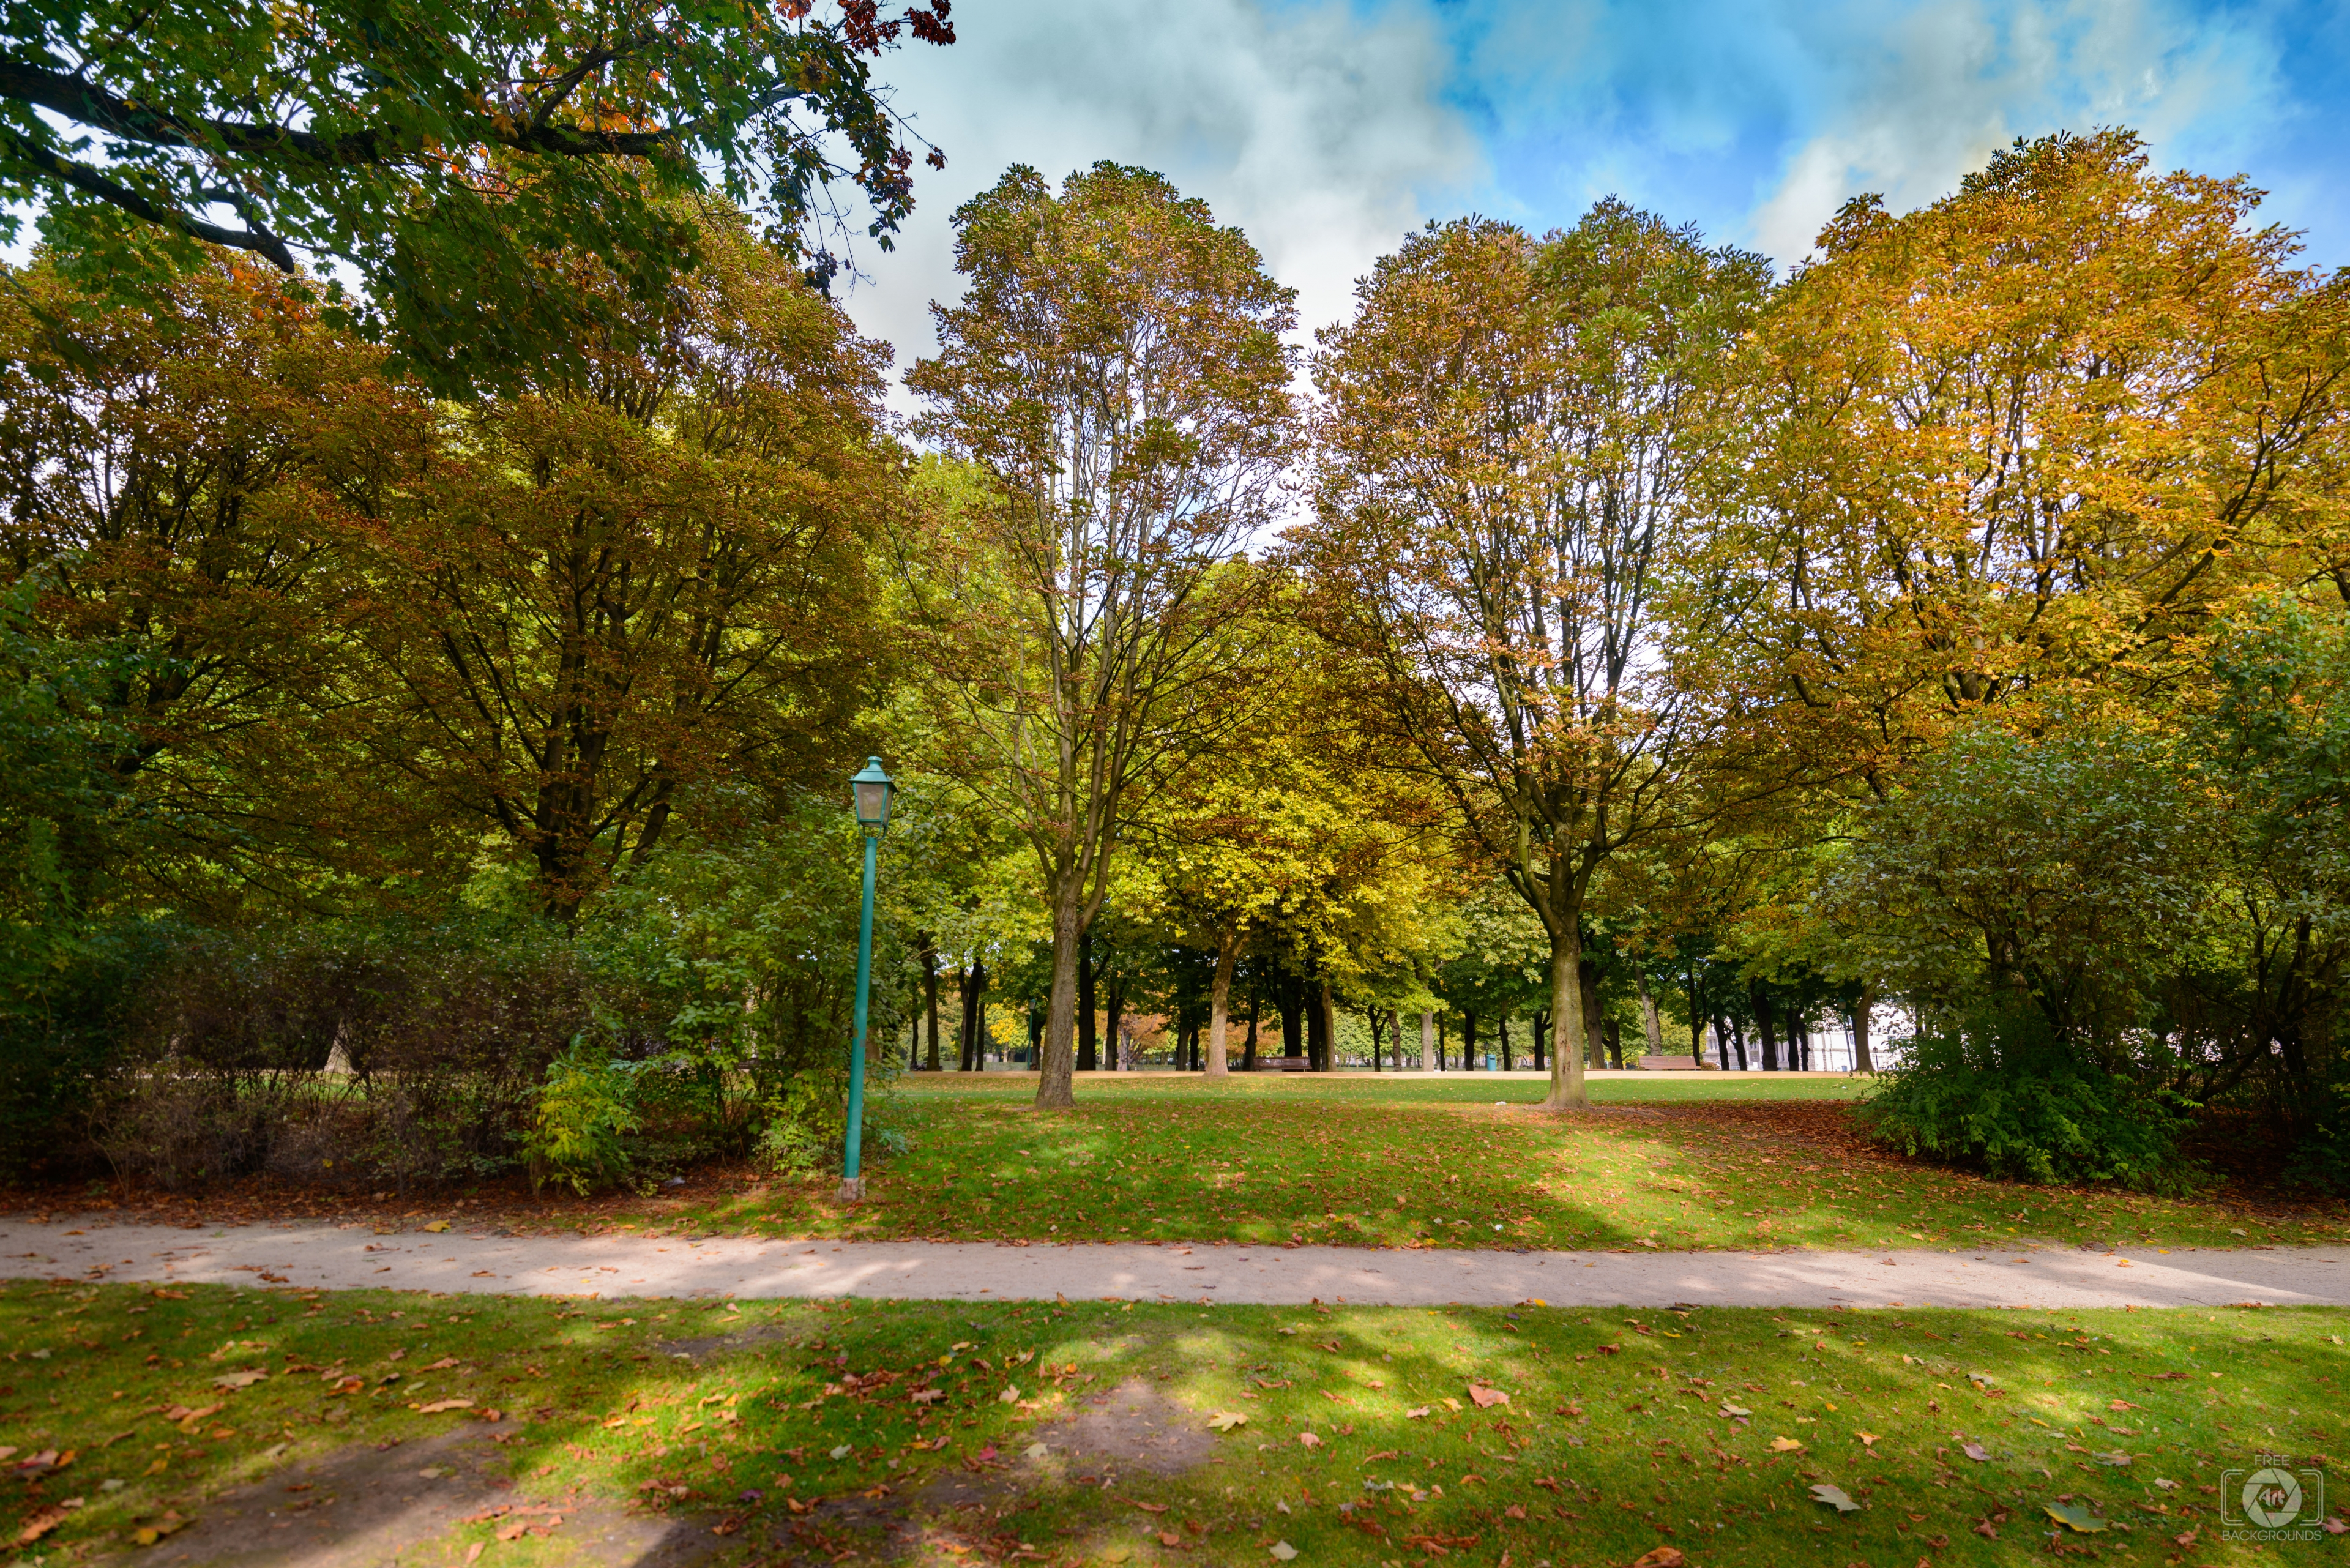 Autumn in Park Background   High quality Backgrounds 3840x2562